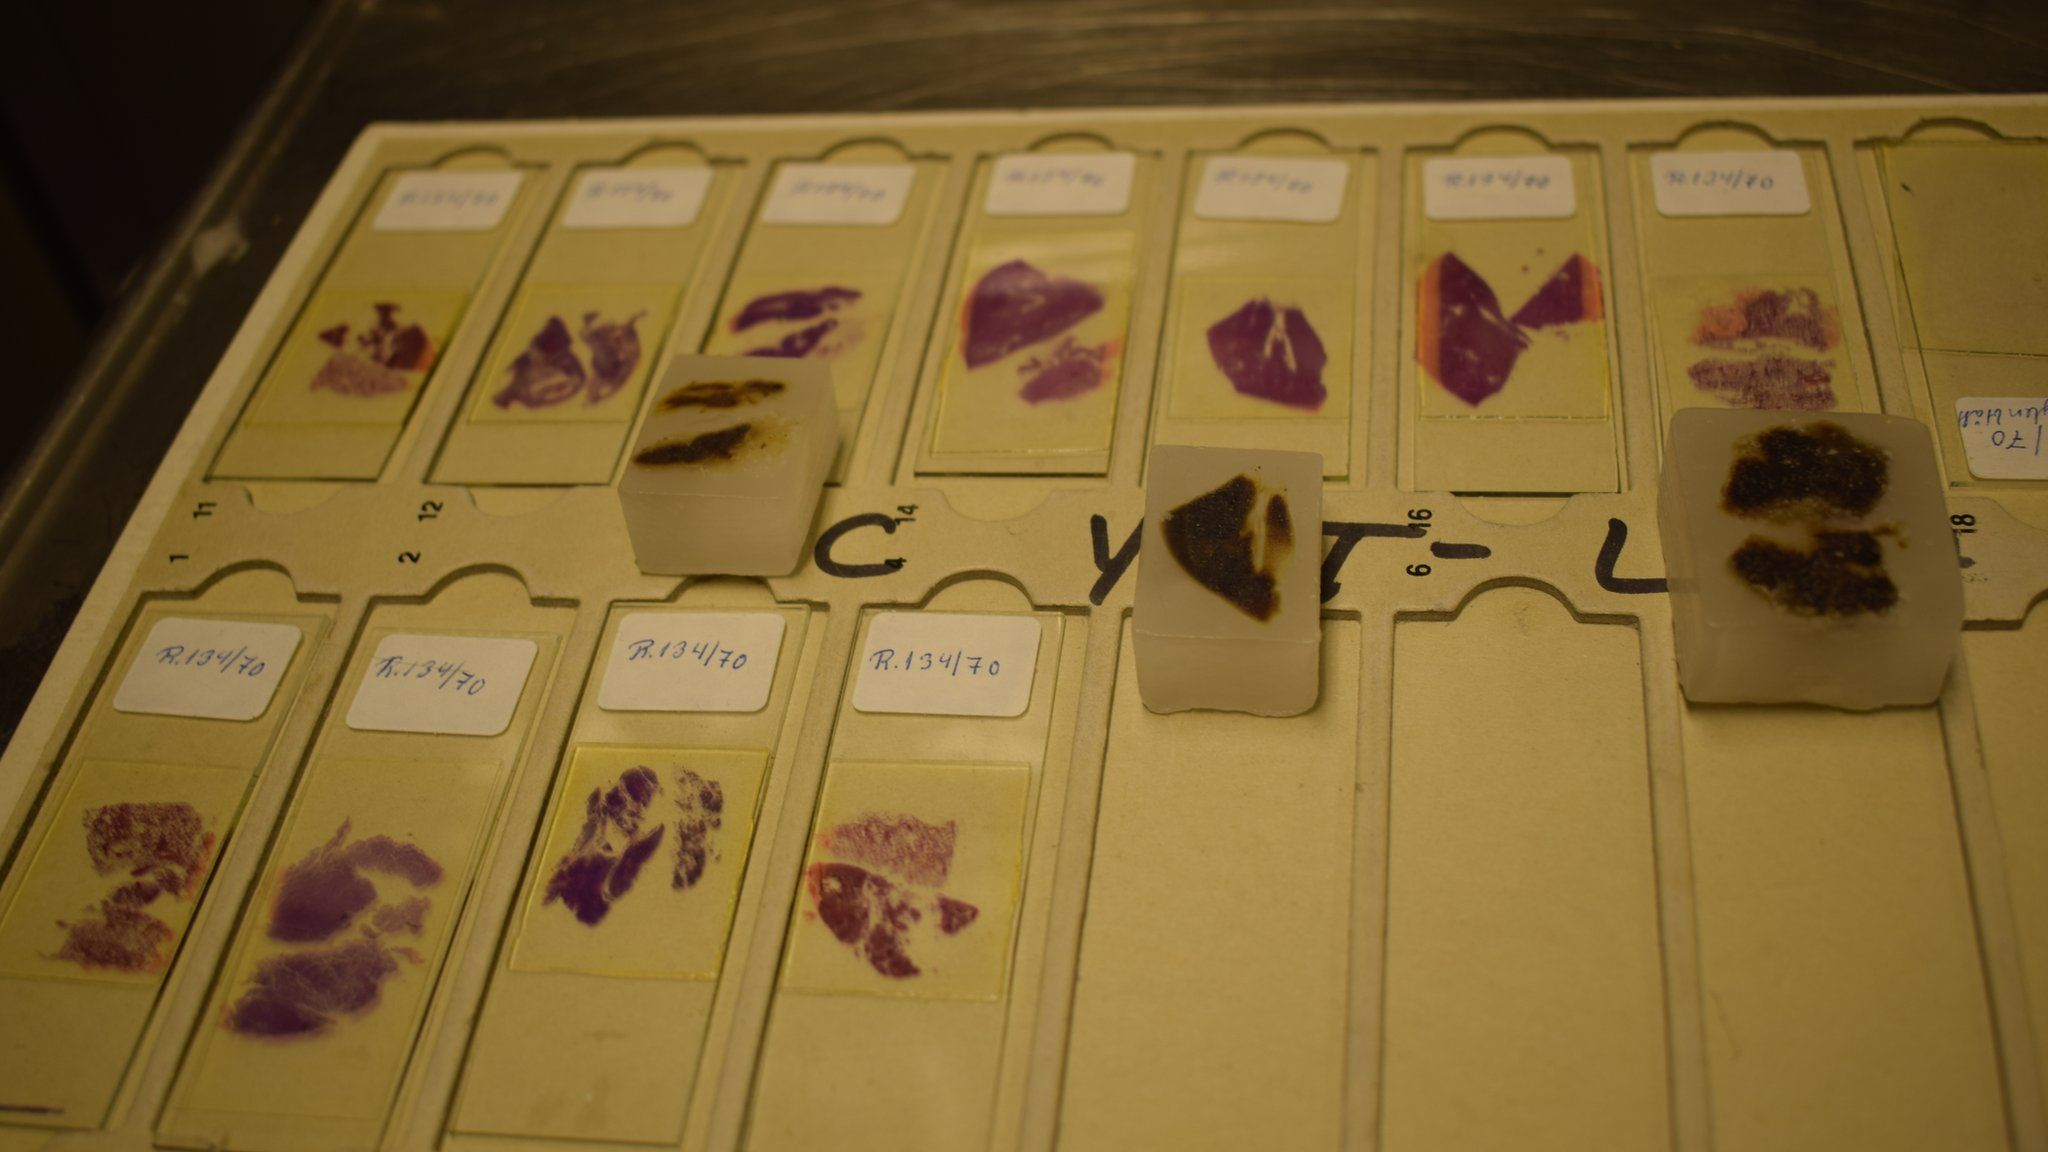 Glass slides and paraffin blocks containing tissue samples from the Isdal Woman's organs